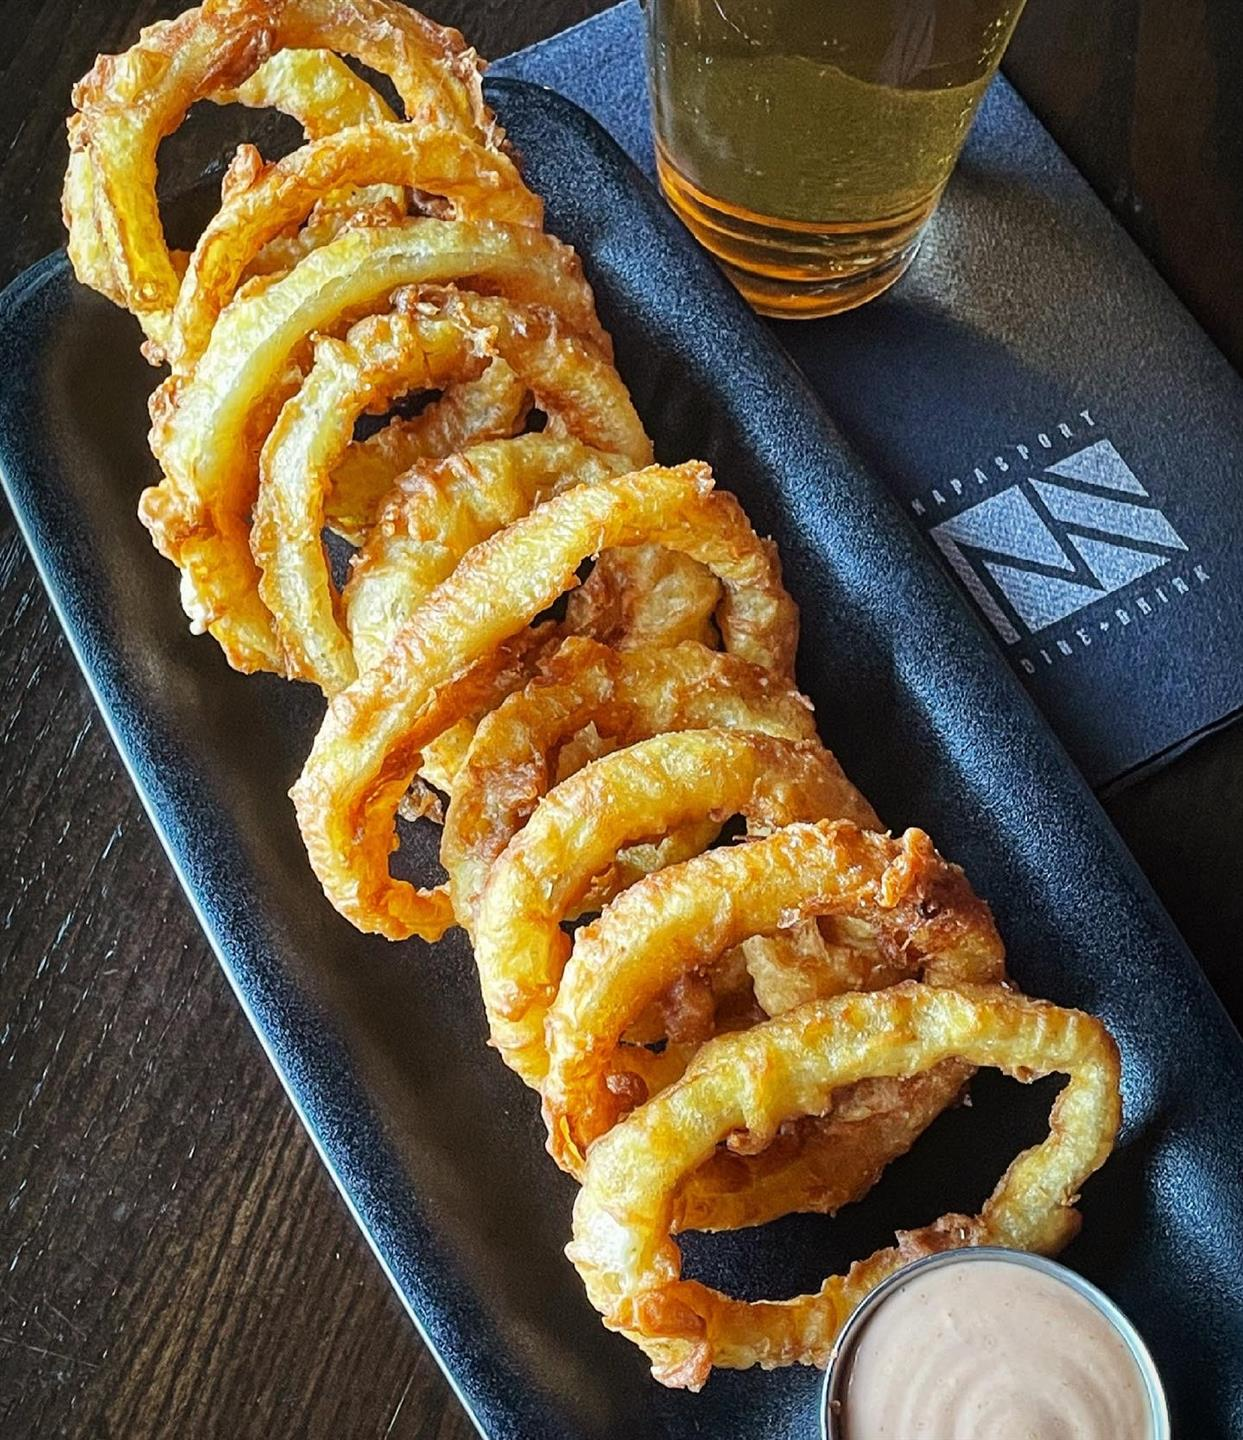 onion rings with a side of dipping sauce